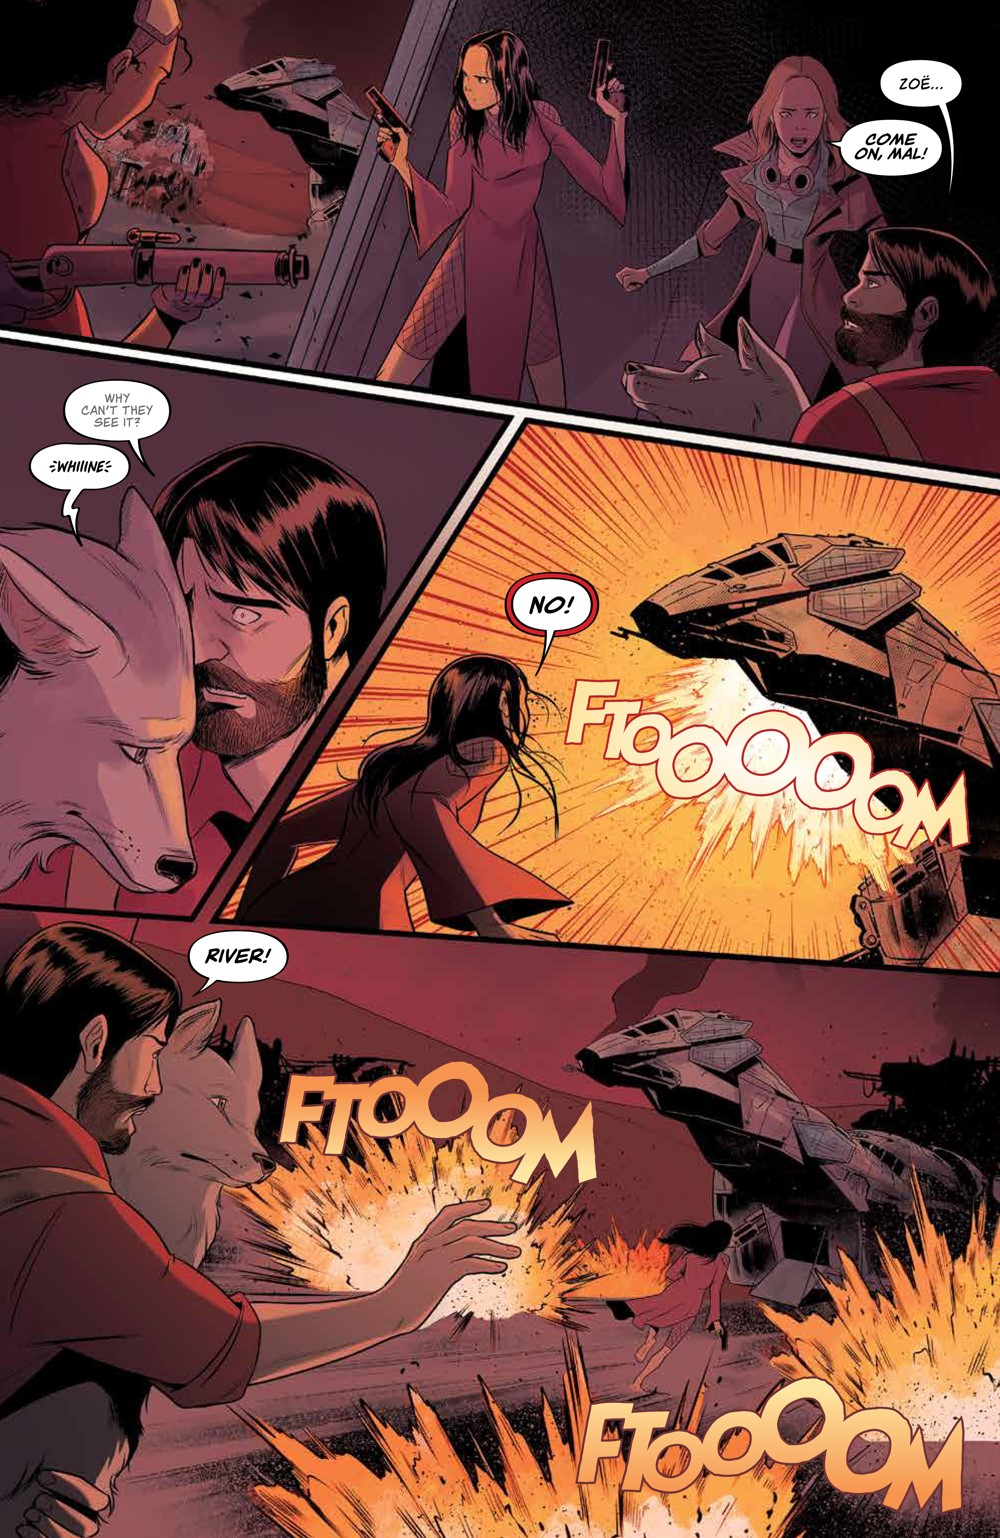 Firefly_030_PRESS_8 ComicList Previews: FIREFLY #30